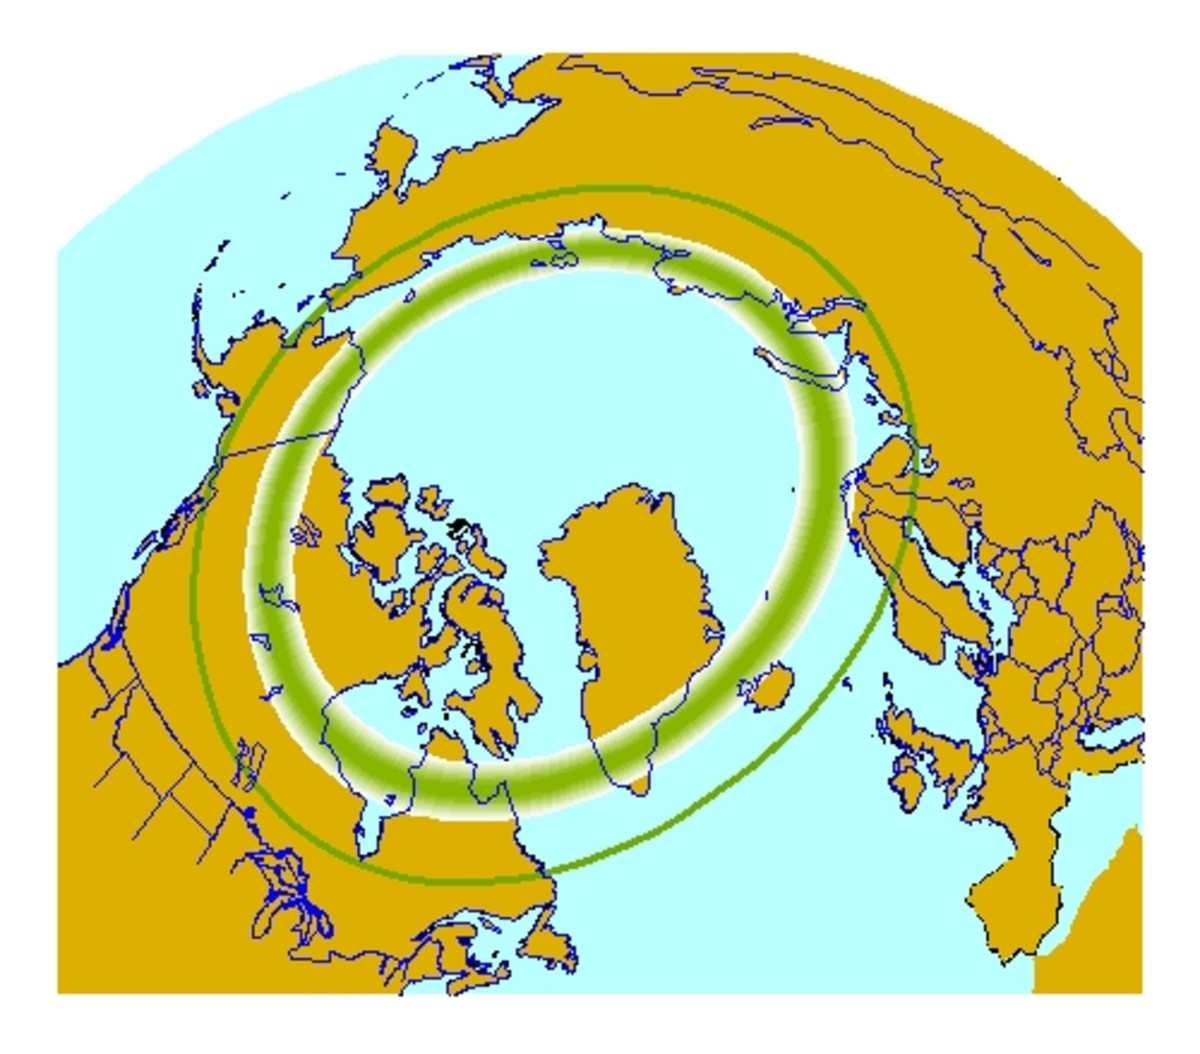 The dark green area shows the aurora belt which is where you are most likely to see the aurora borealis or northern lights.